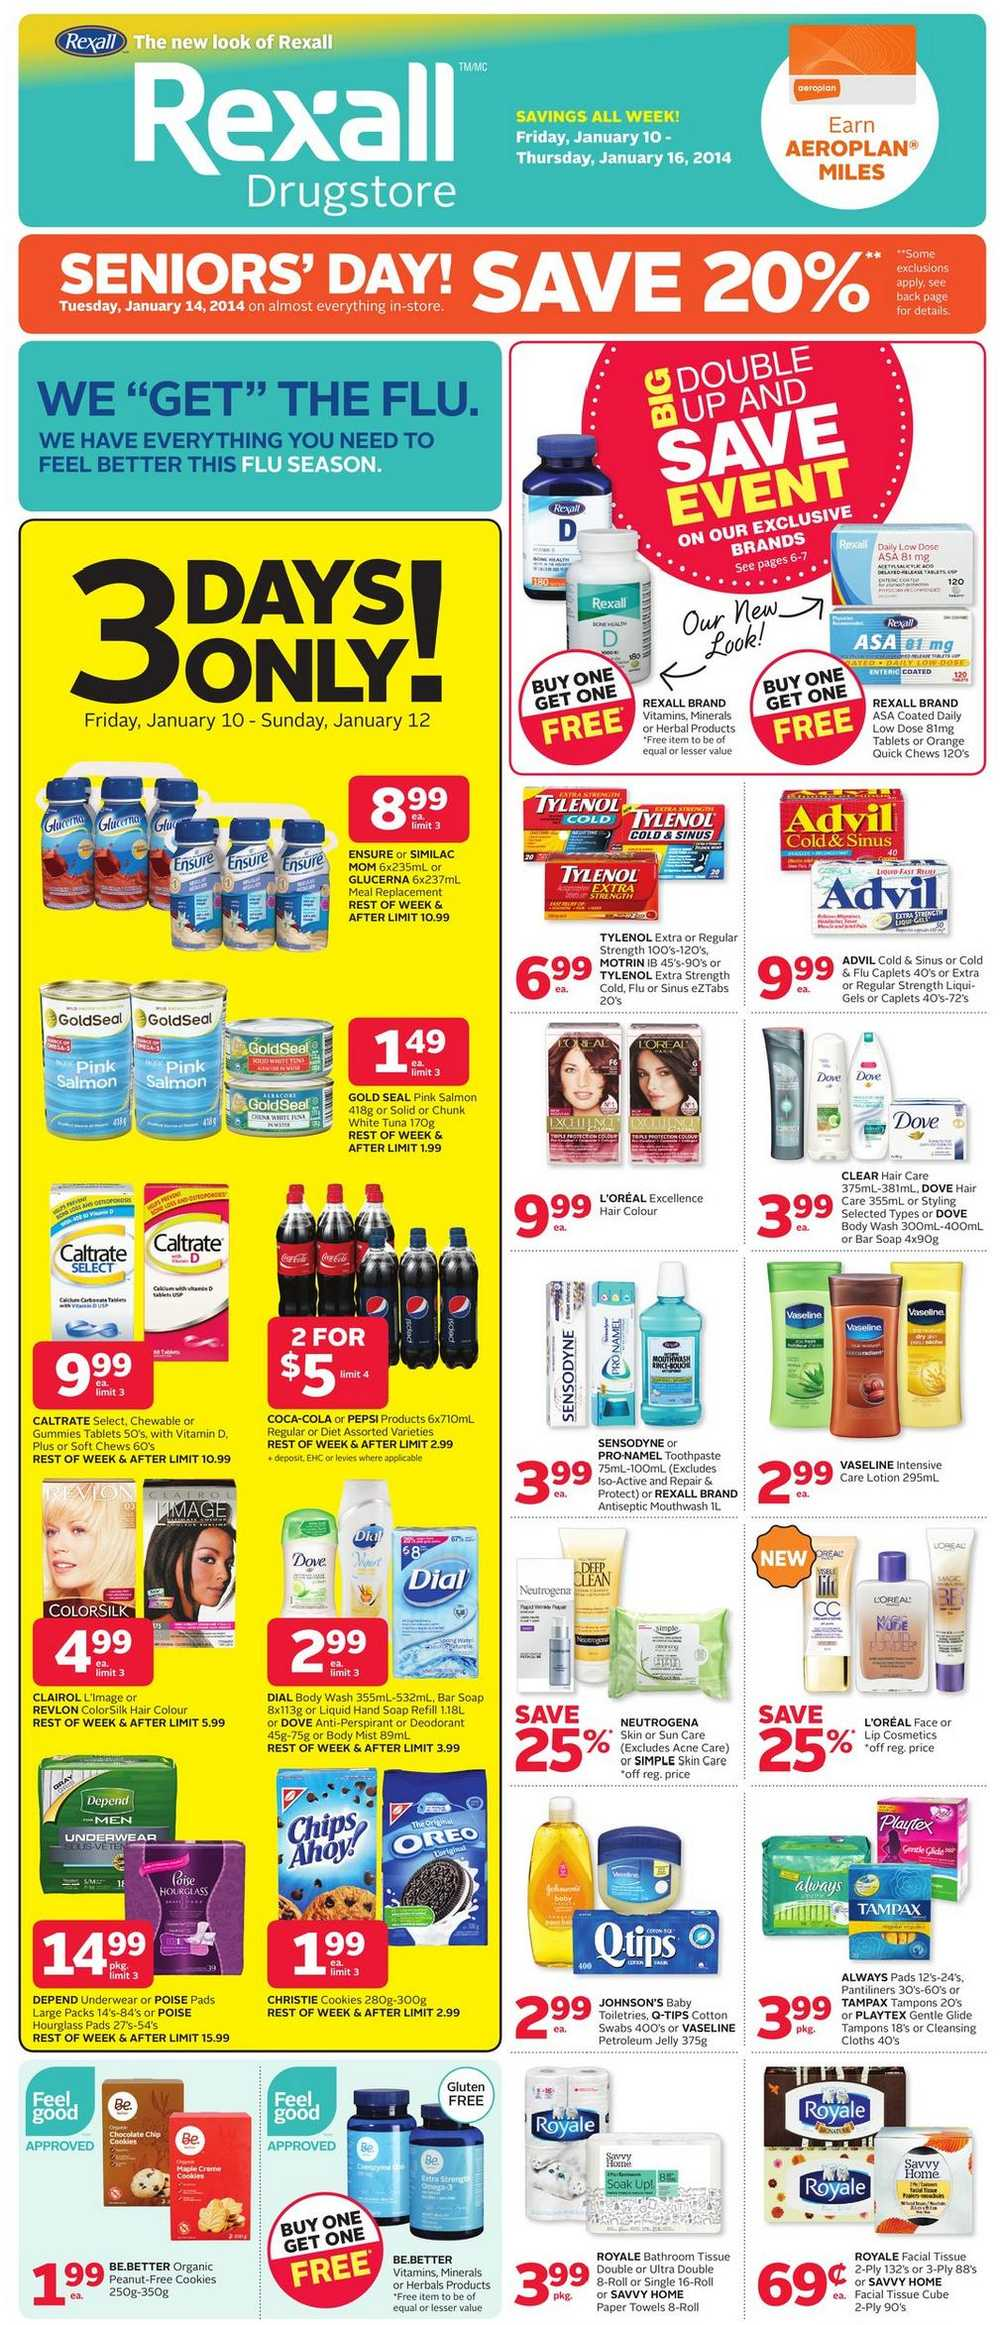 Top Deals and Promotions